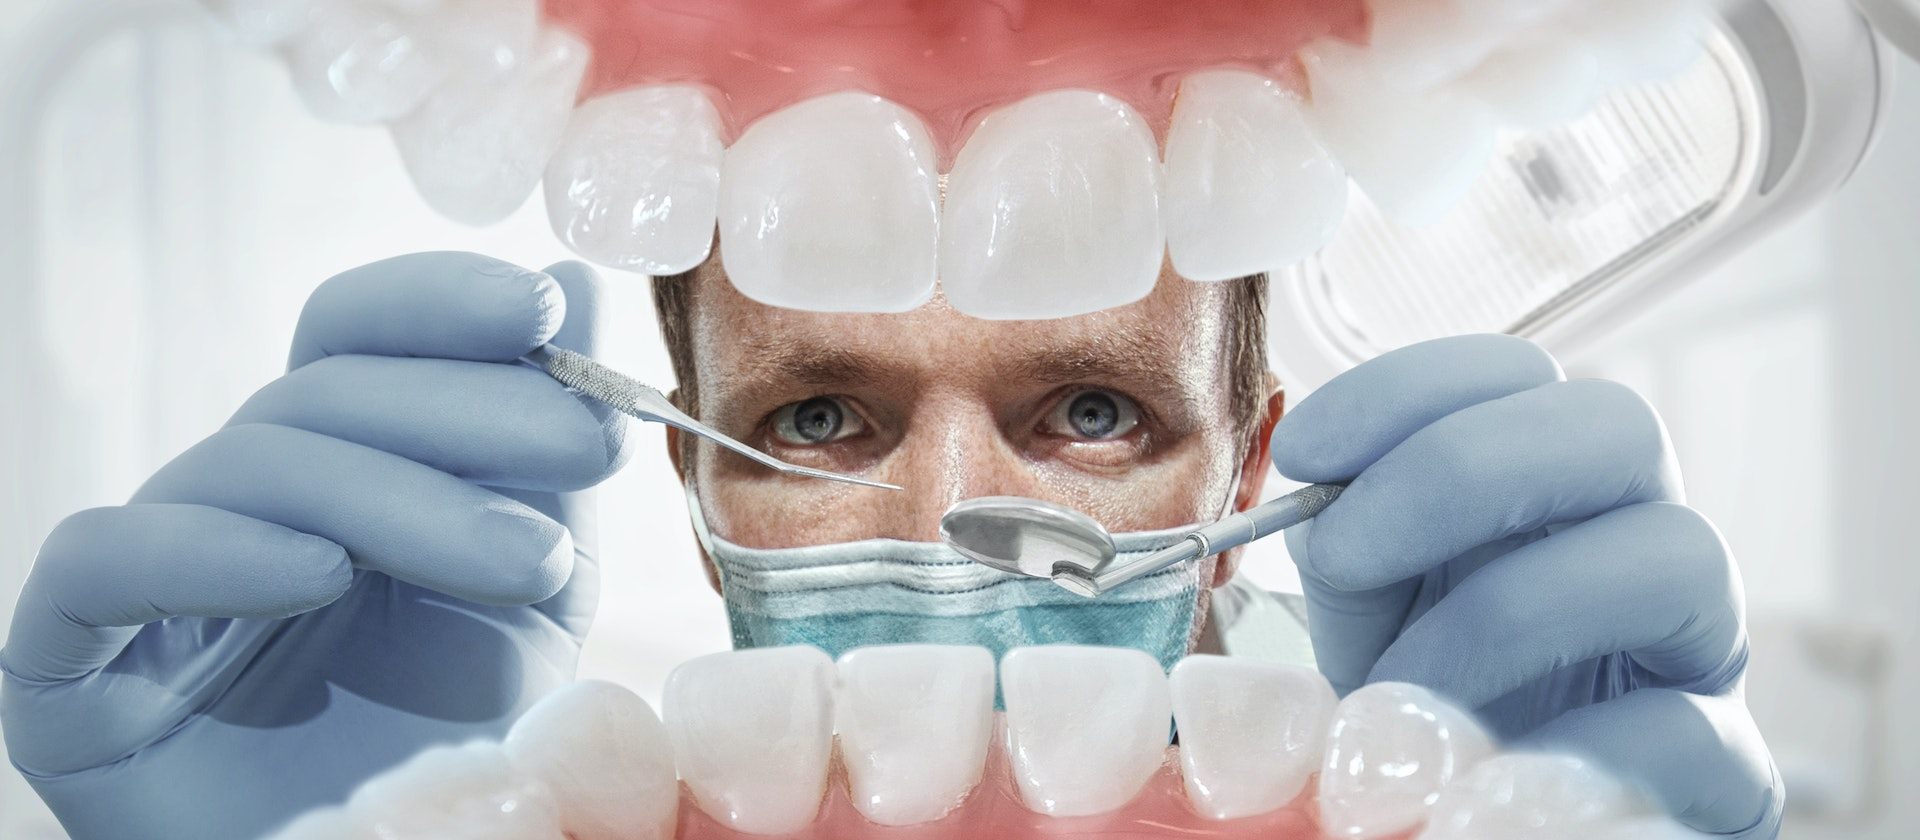 Lesions On The Roof Of The Mouth Symptom Causes Questions Buoy